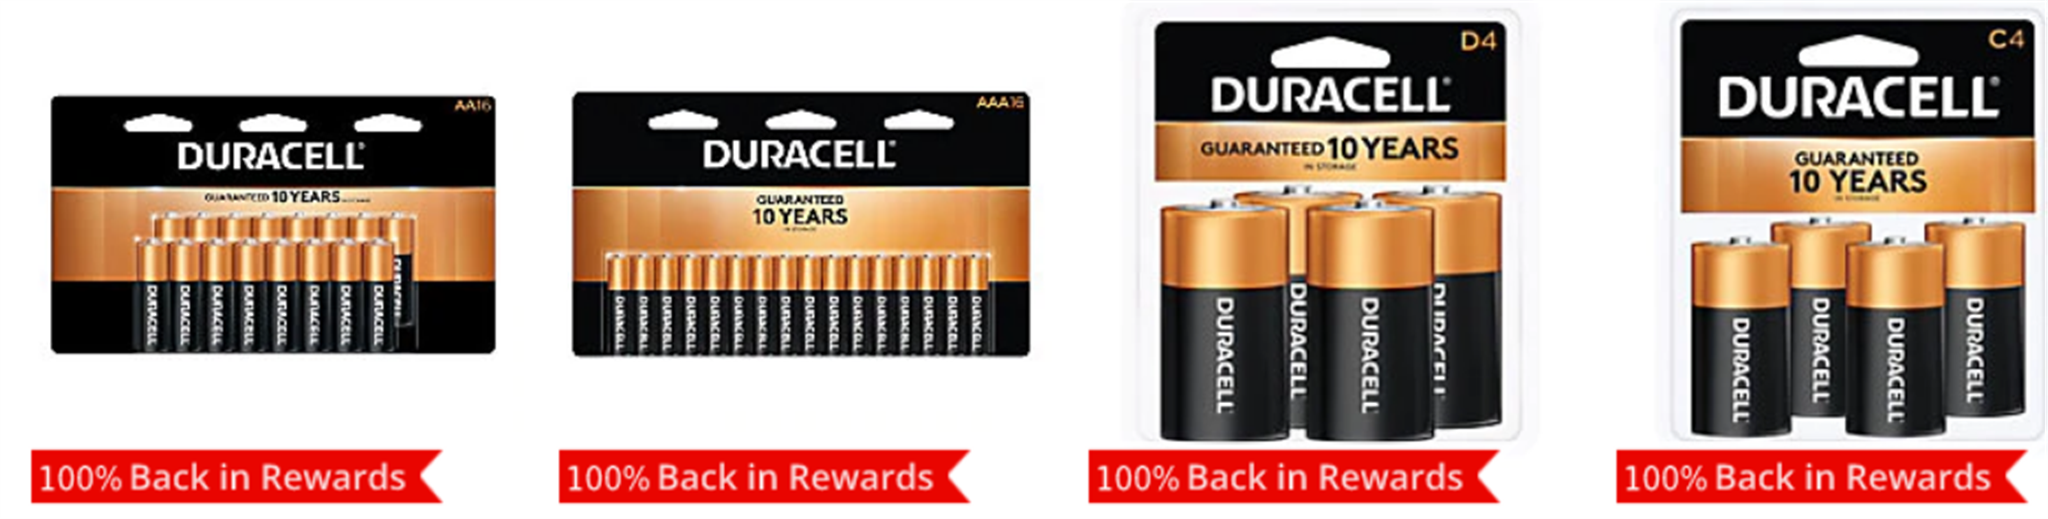 Office Depot and Office Max – 4 FREE Packs Of Duracell Batteries!